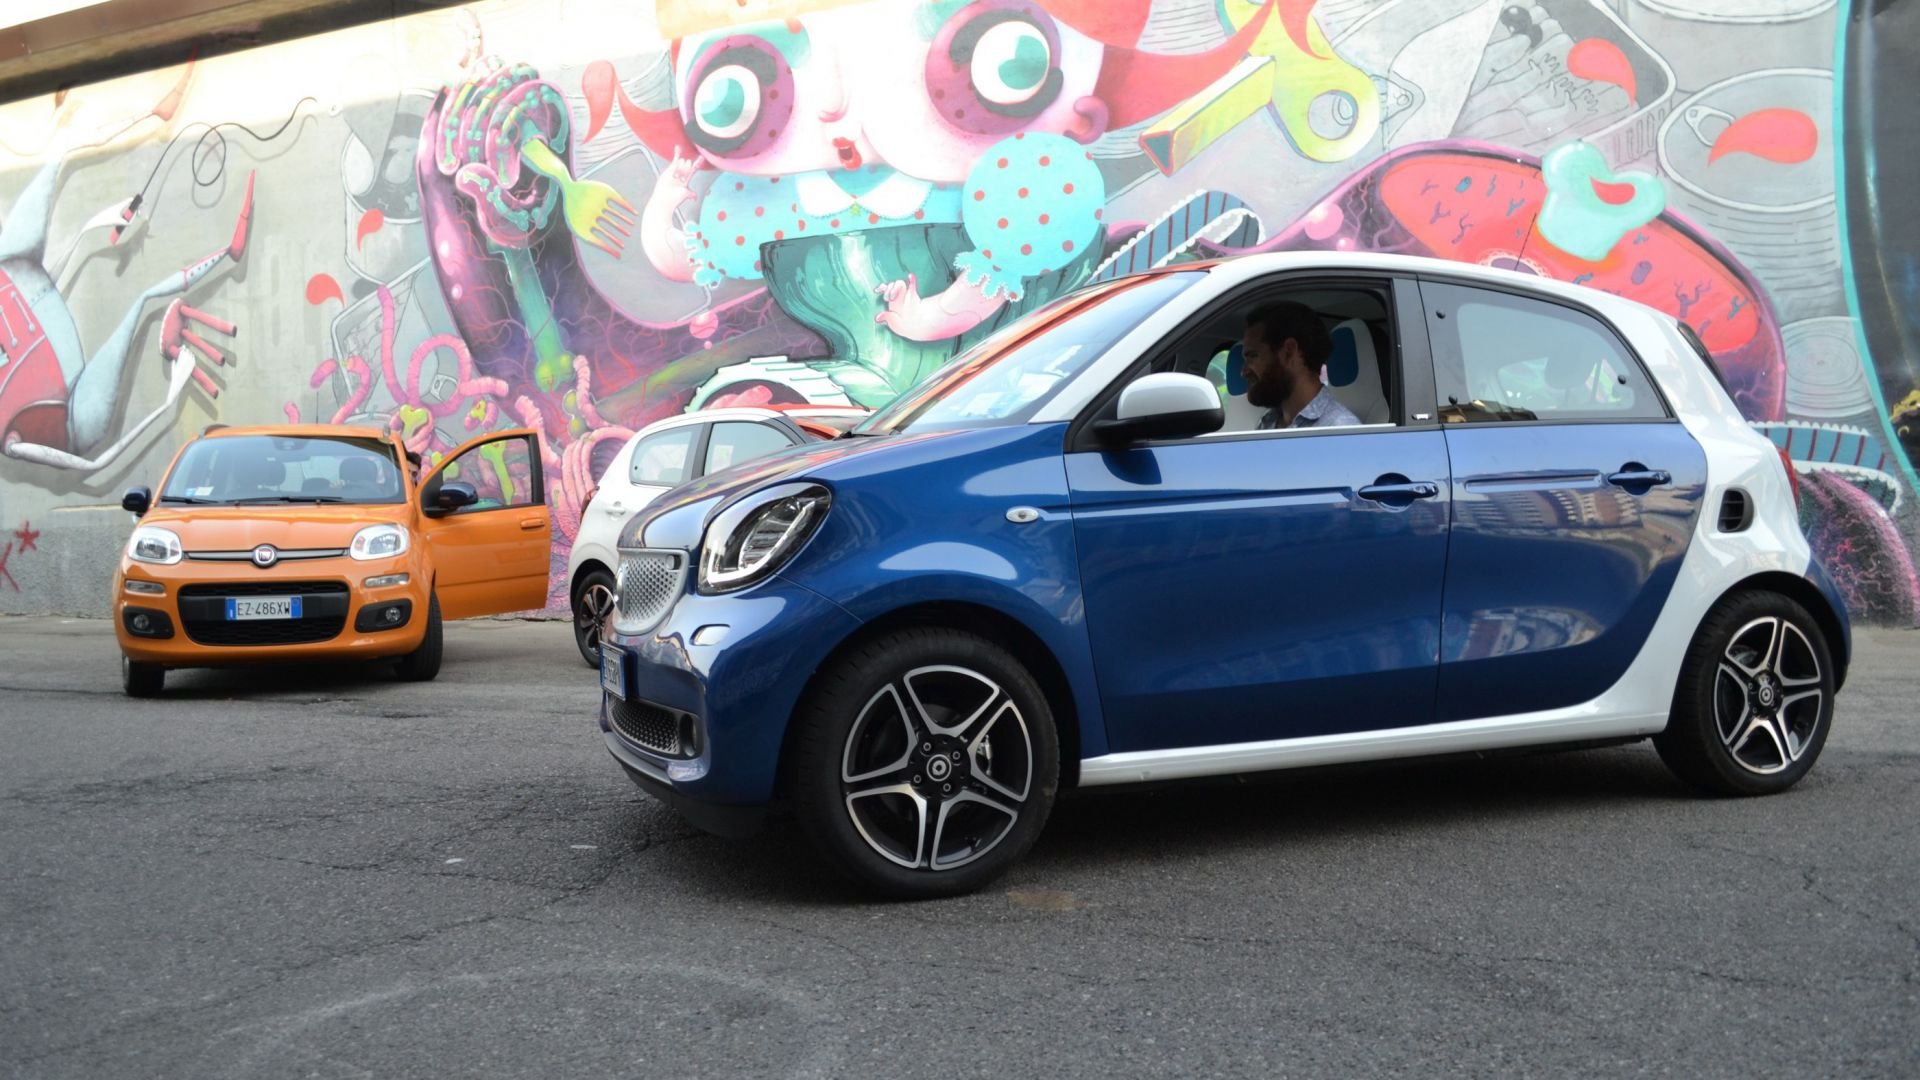 video confronto  citro u00ebn c1 vs fiat panda vs smart forfour